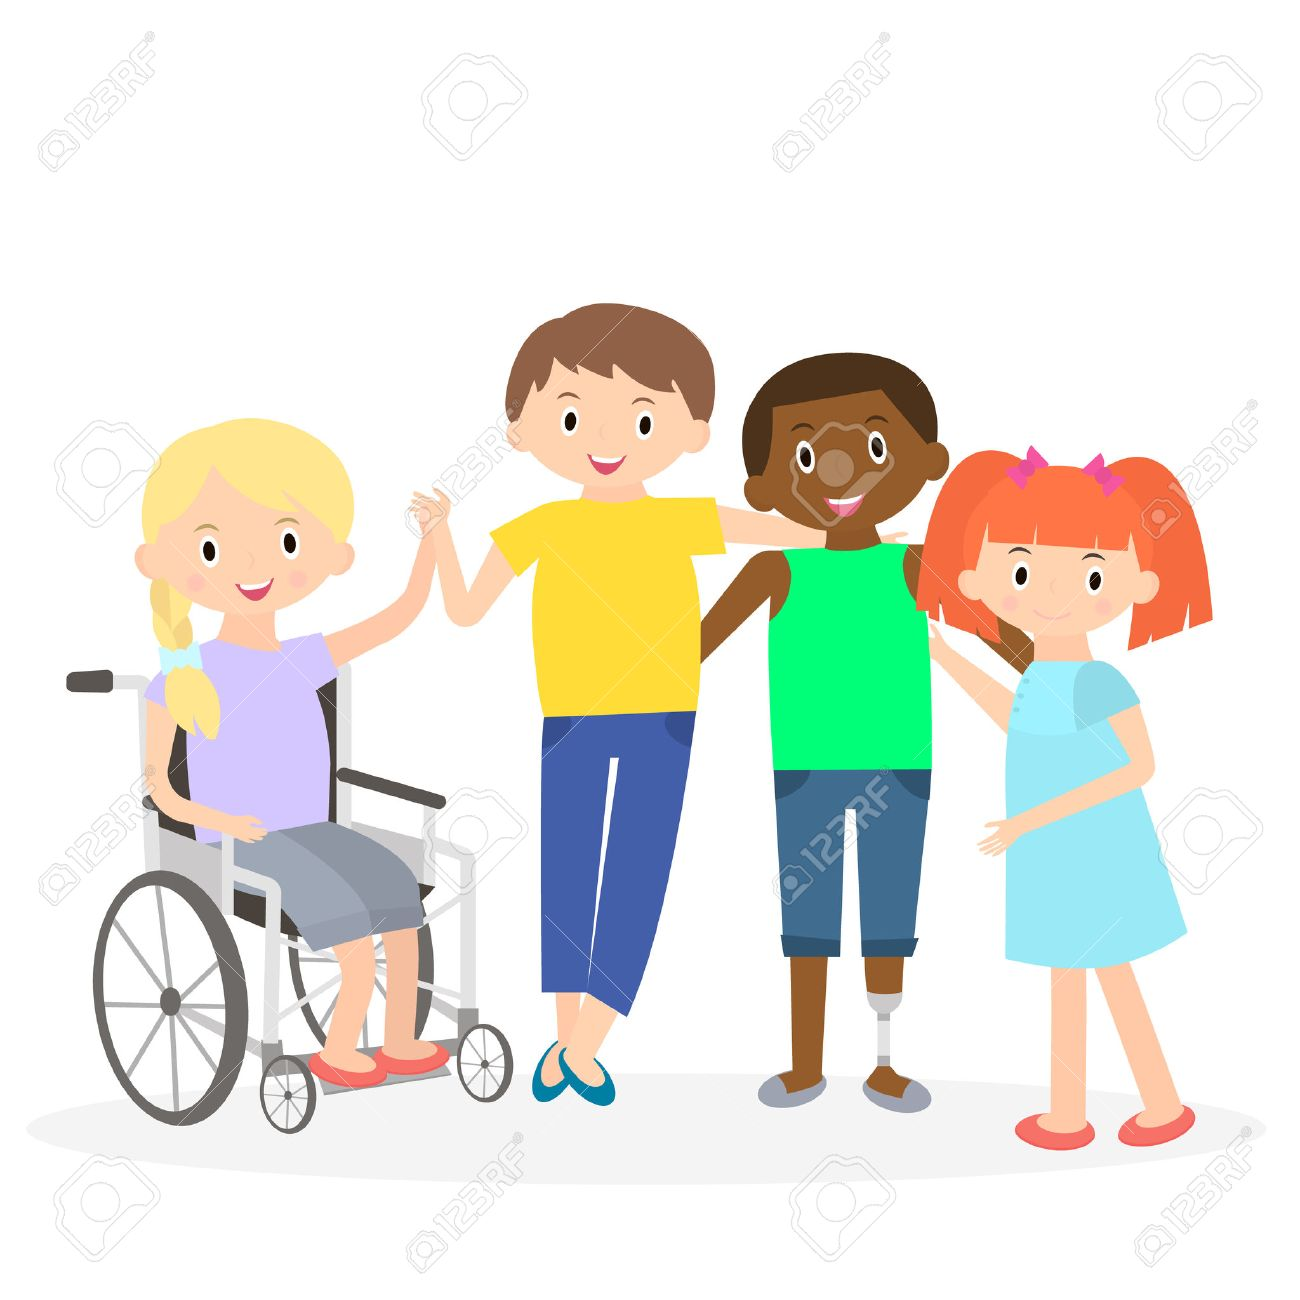 177 Disability Diversity Stock Vector Illustration And Royalty Free.